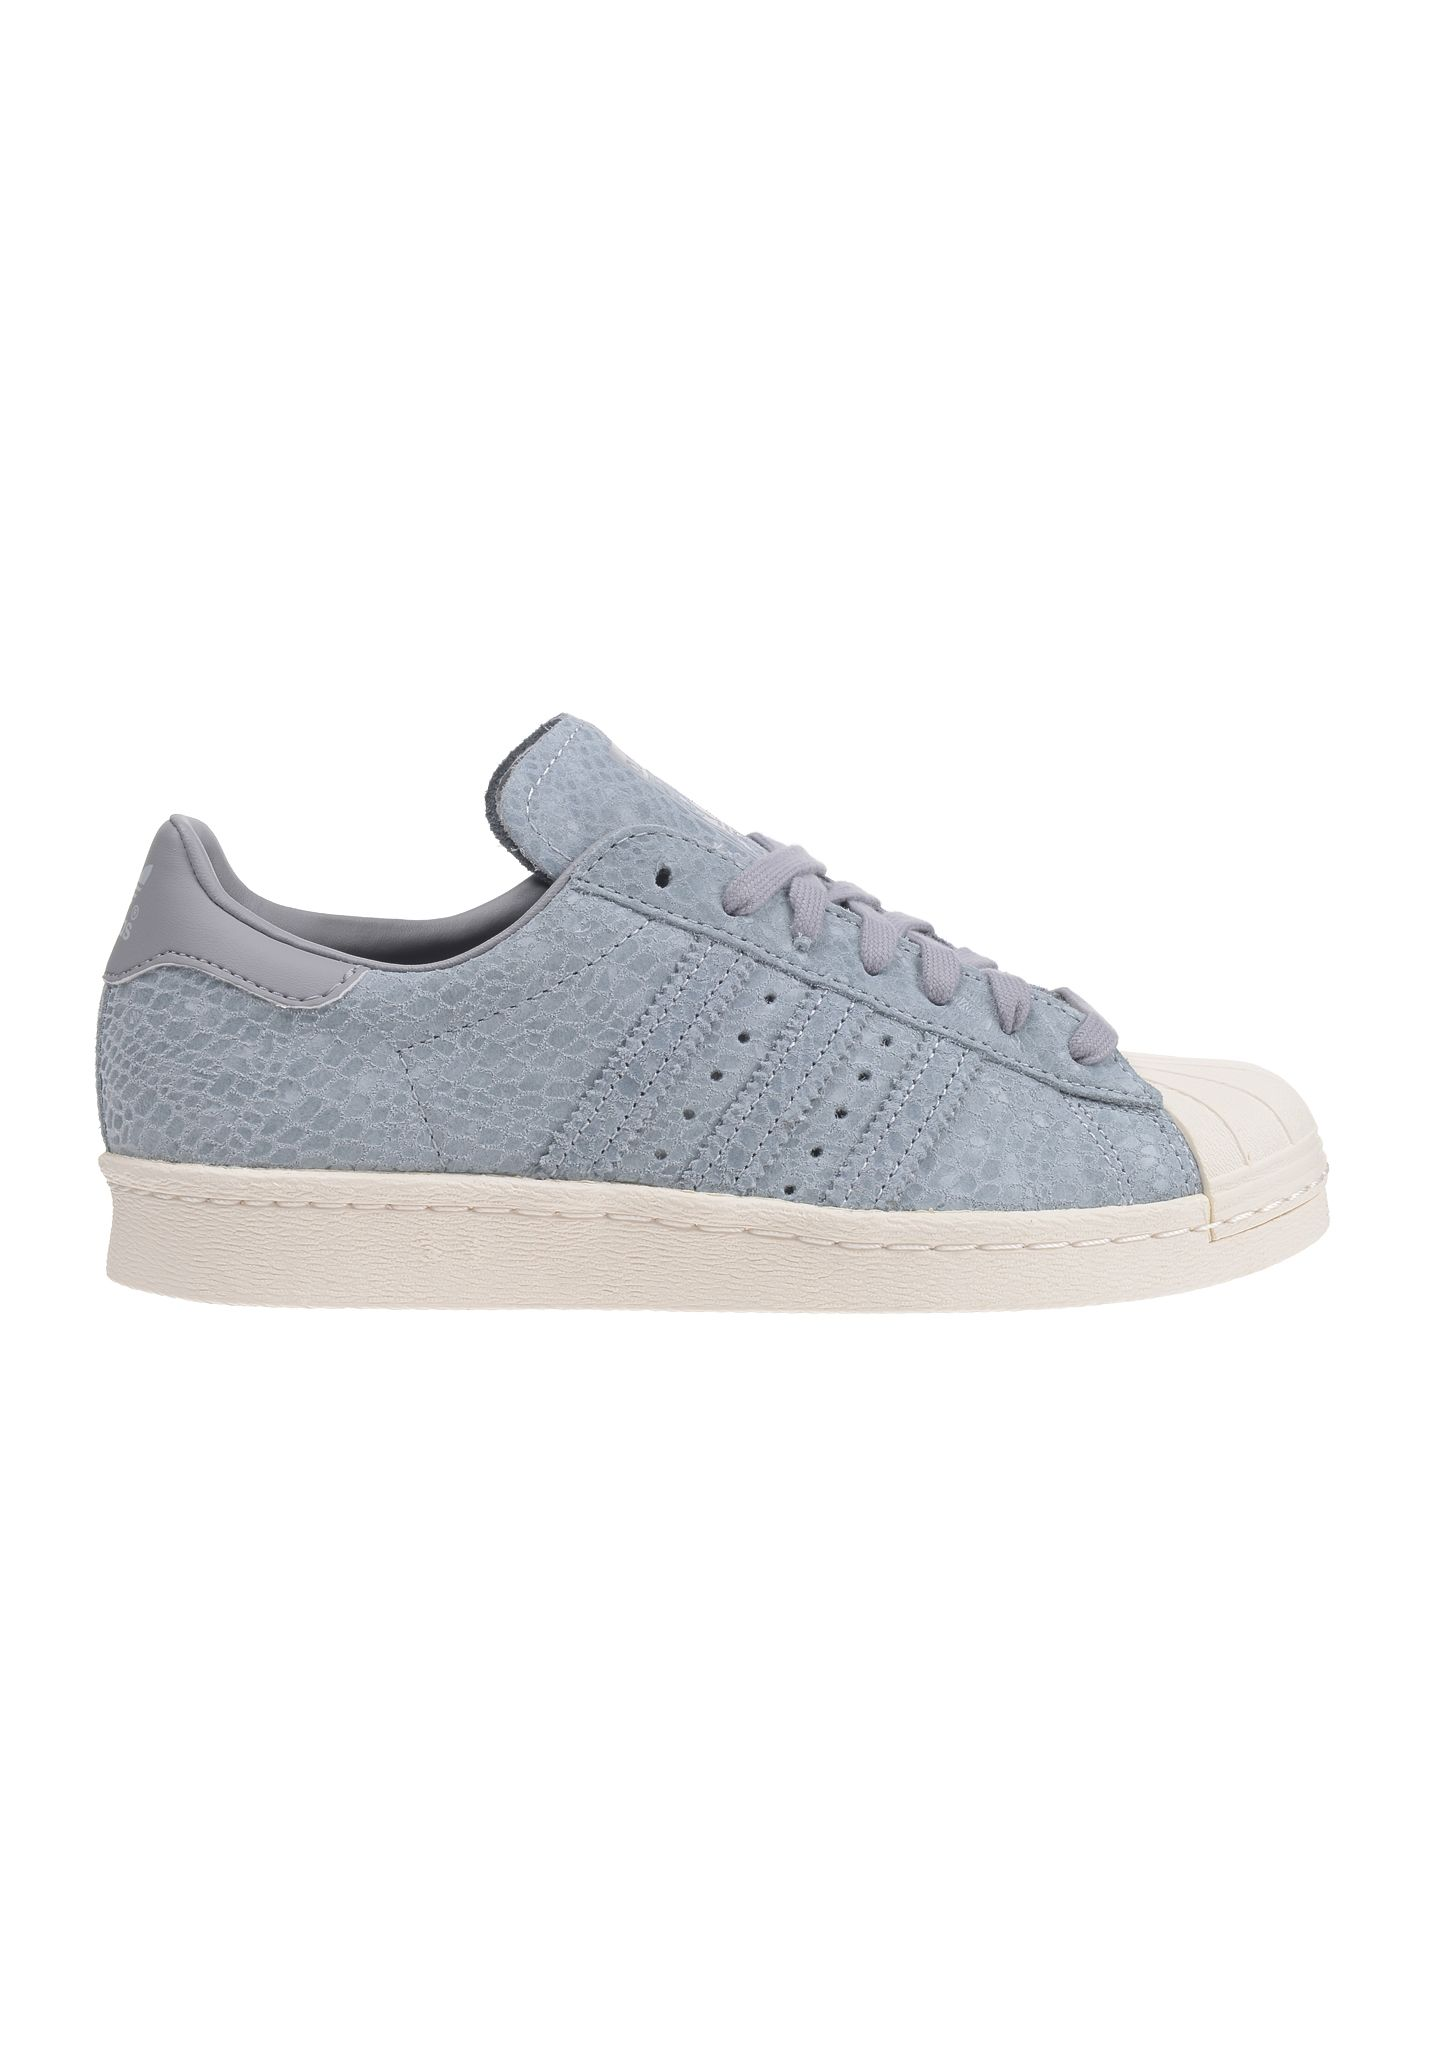 adidas superstar 80 s femme homme chaussures basket adidas superstar 80s woven age adulte couleur be. Black Bedroom Furniture Sets. Home Design Ideas